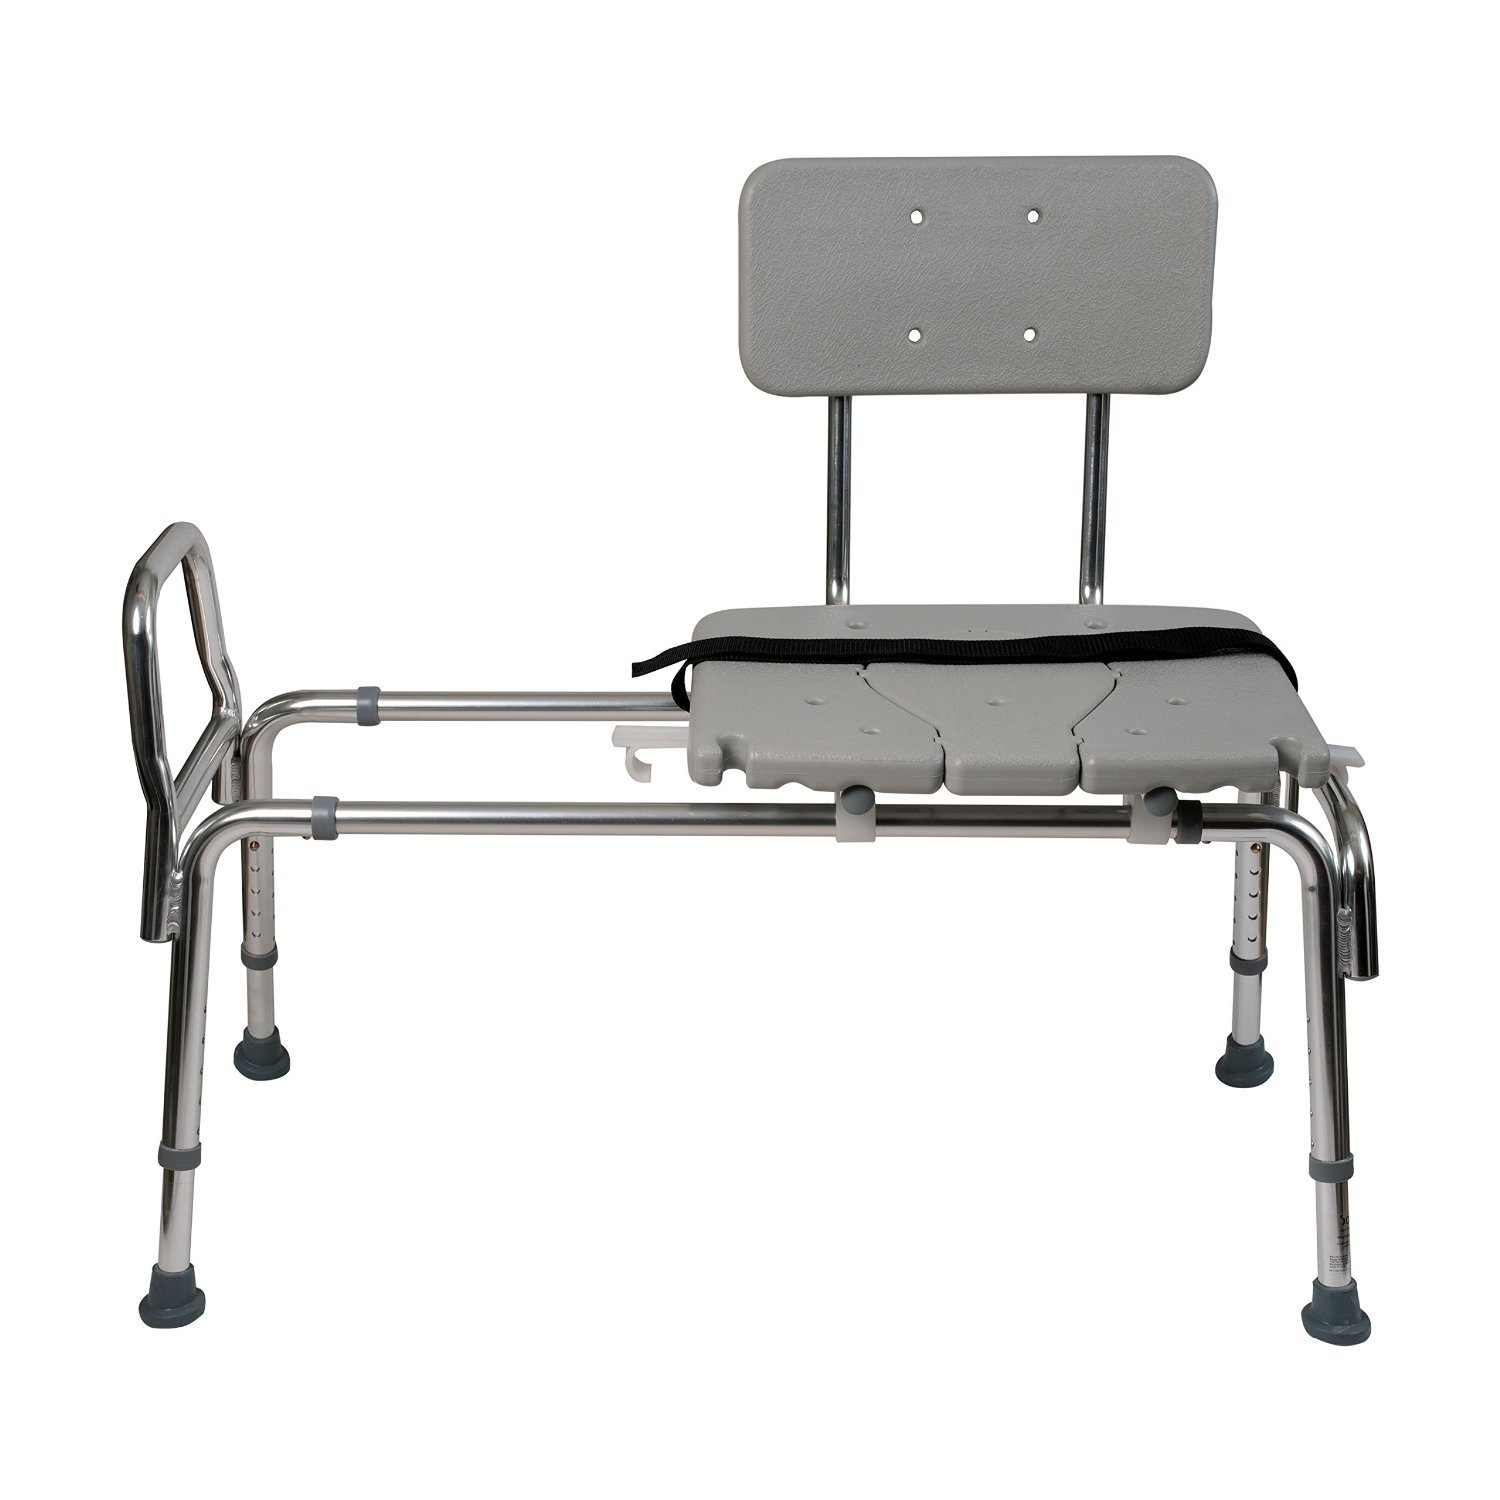 Duro-Med Heavy-Duty Sliding Transfer Bench Shower Chair with Cut-out Seat and Adjustable Legs, Gray